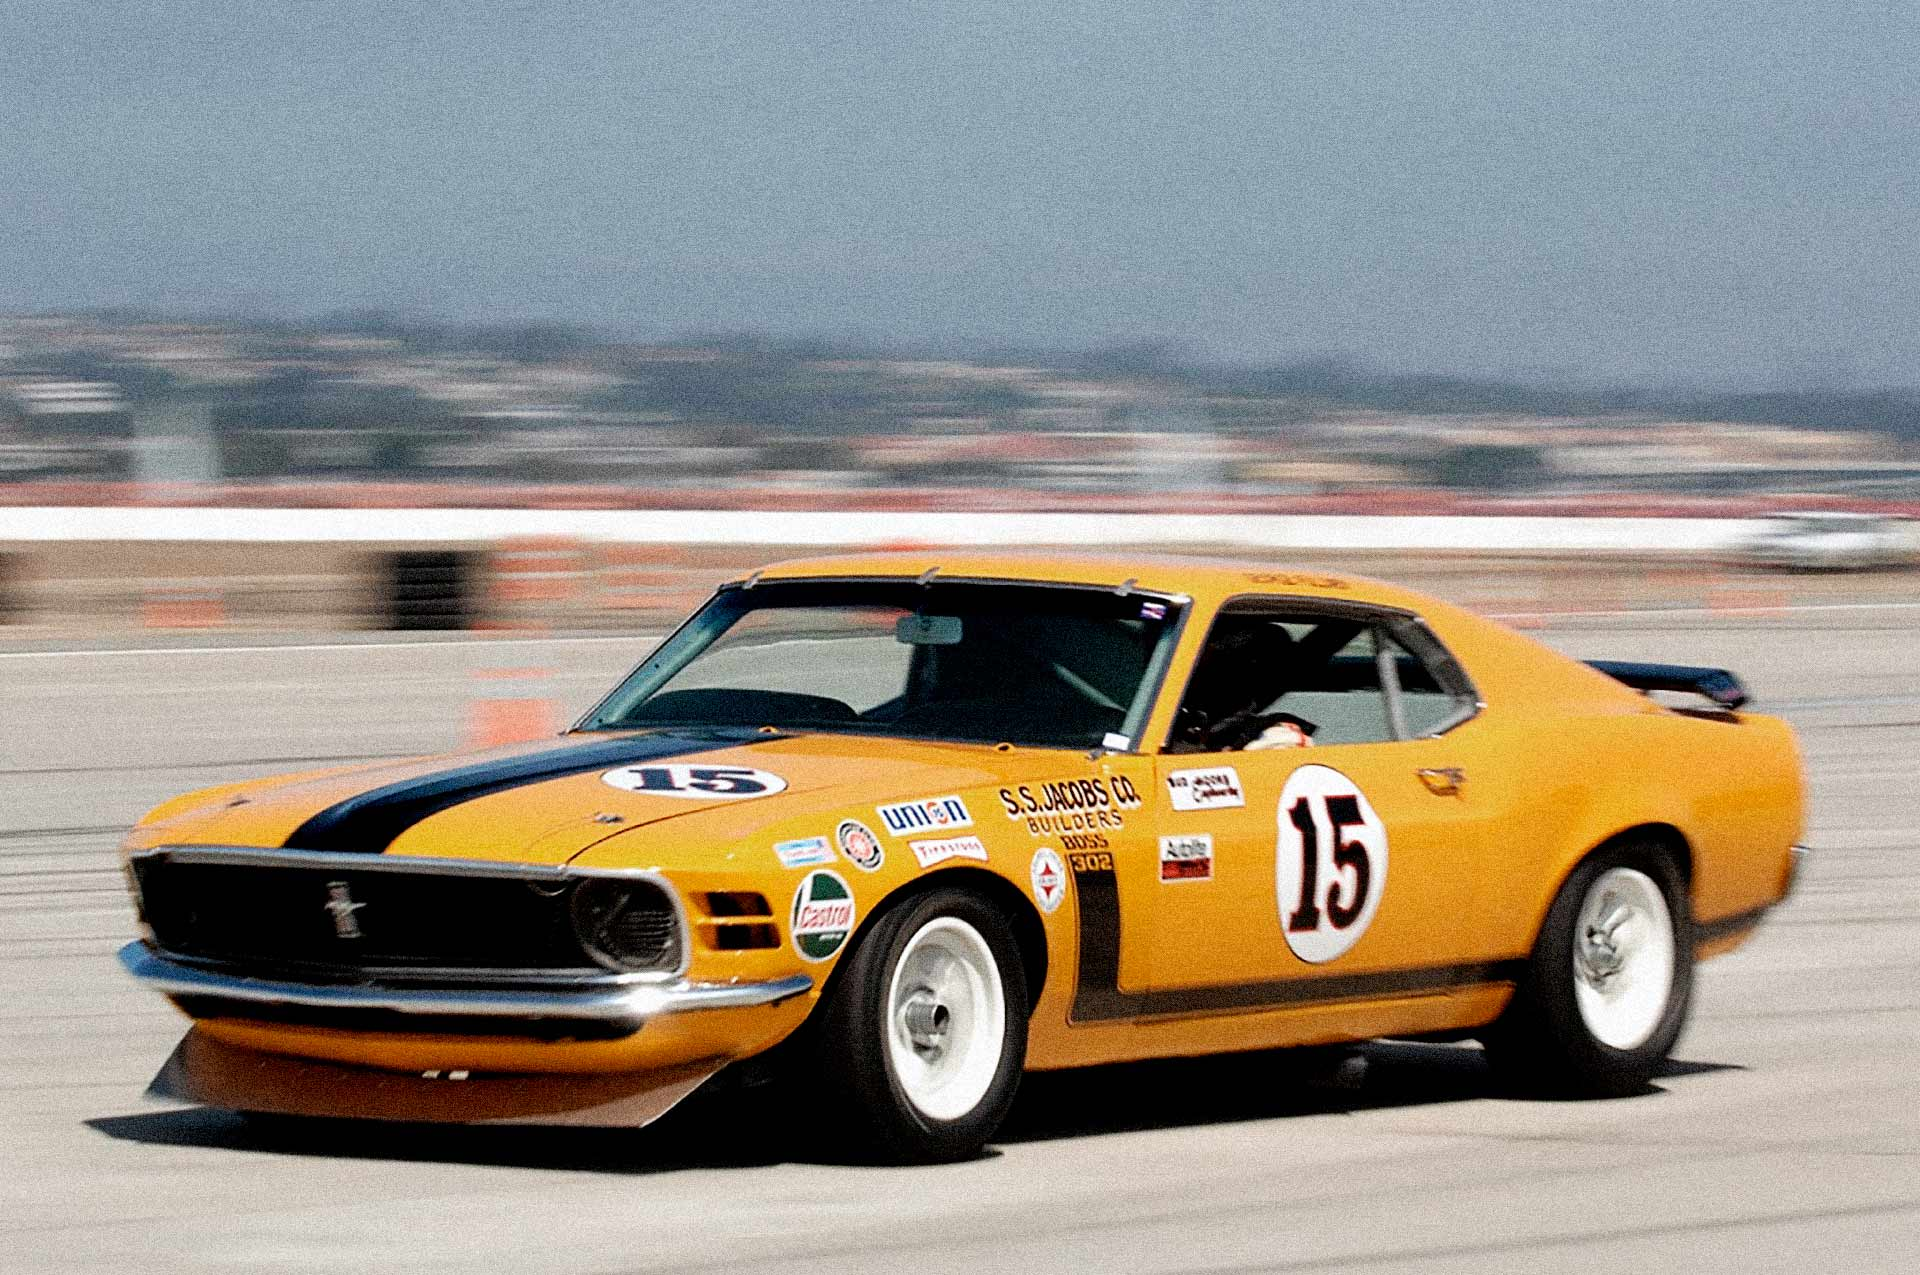 Vintage racer wearing the livery of the TransAm championship winning car of Parnelli Jones.